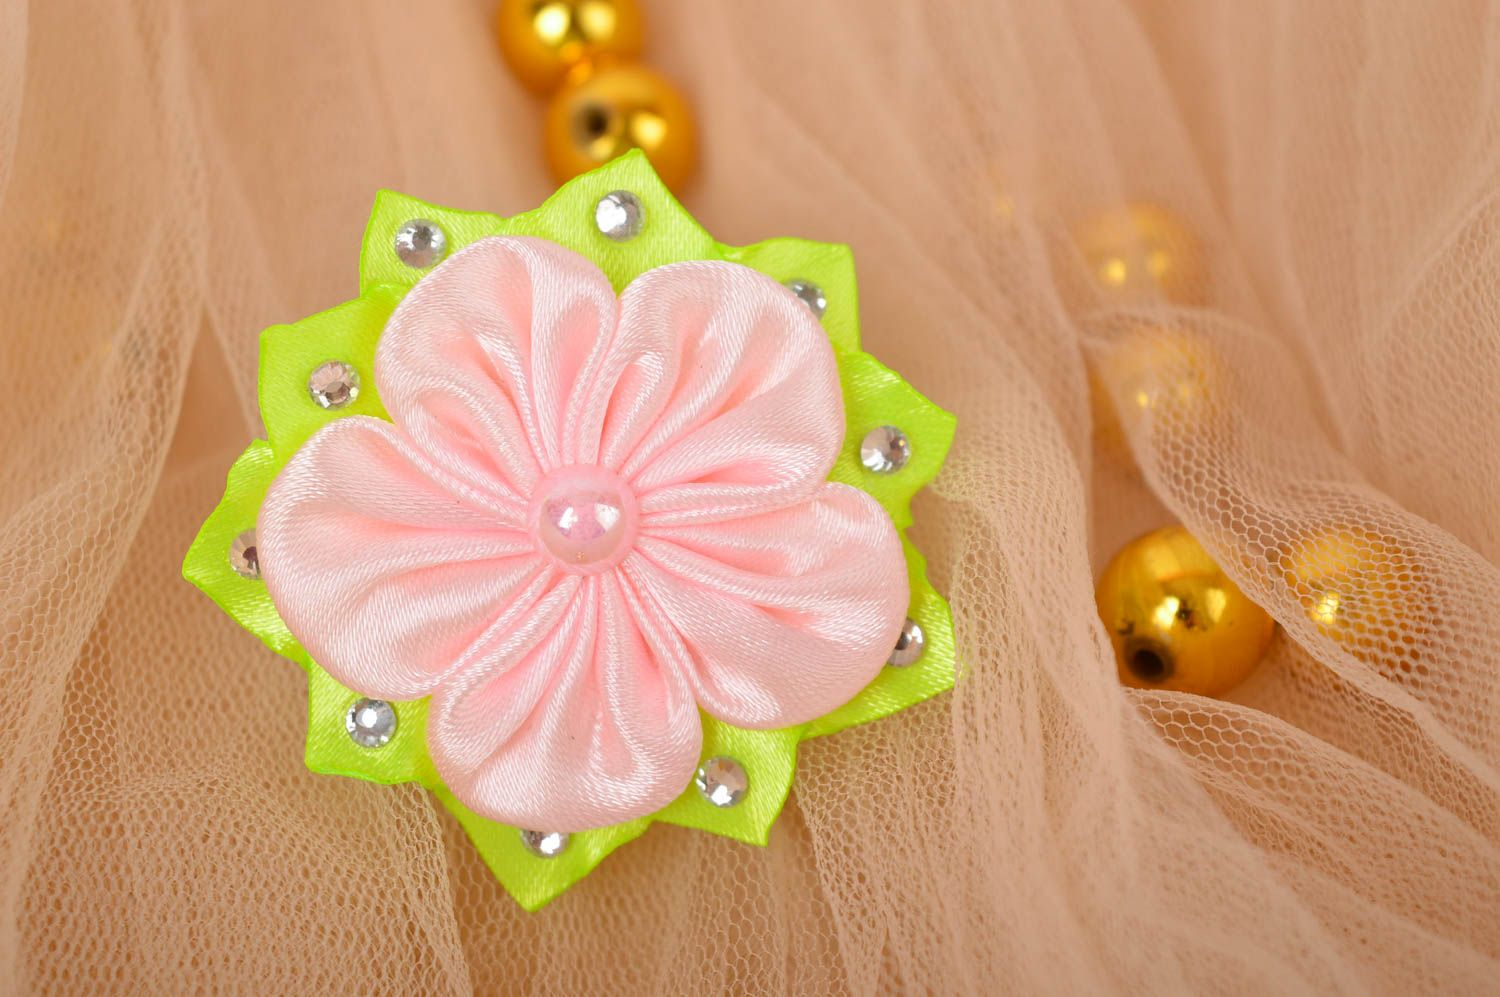 Handmade hair accessory hair tie flowers for hair gifts for kids hair jewelry photo 1